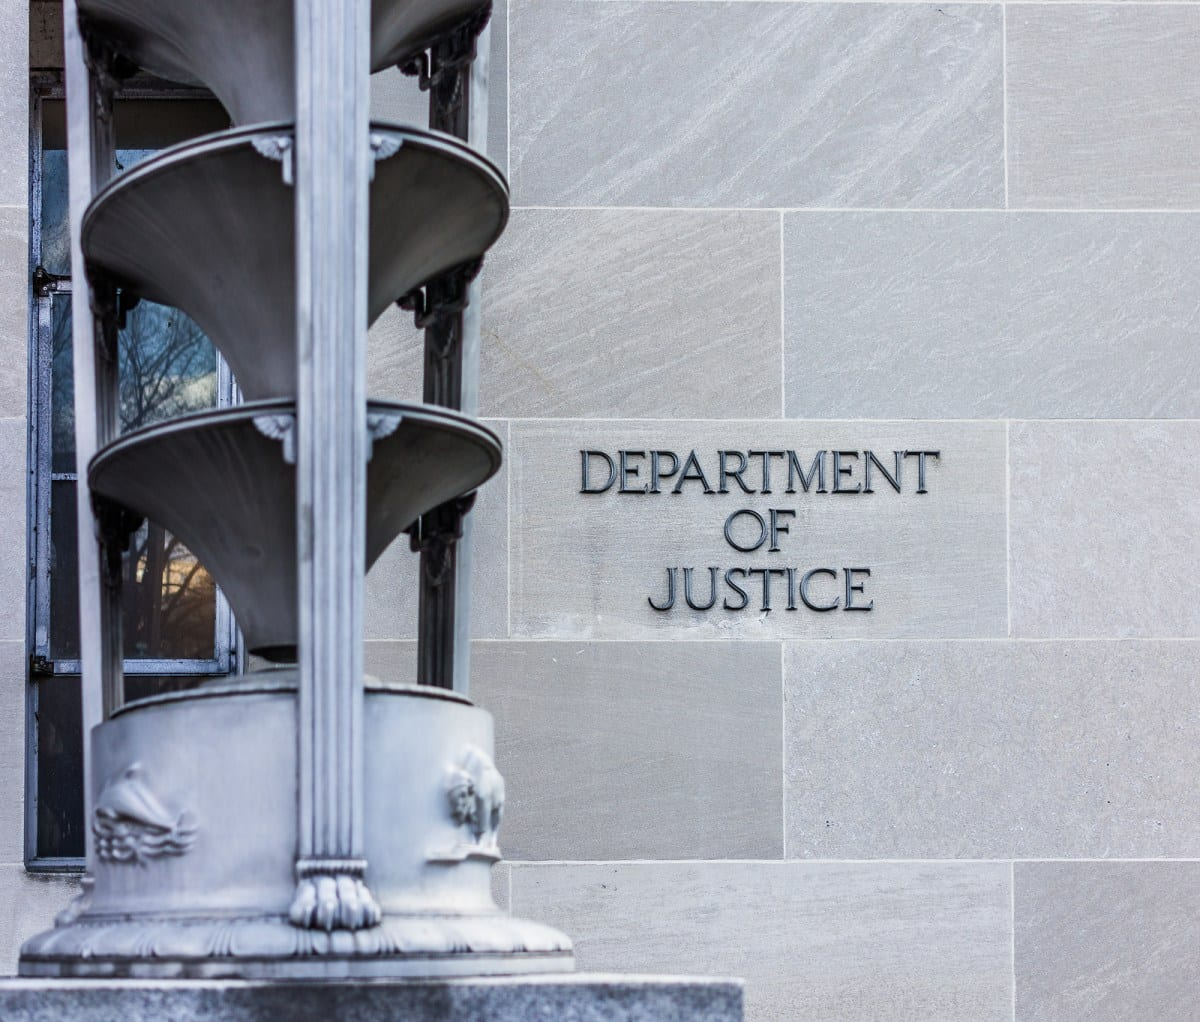 United States News: Lima man, Dustin Davis indicted for child pornography offenses